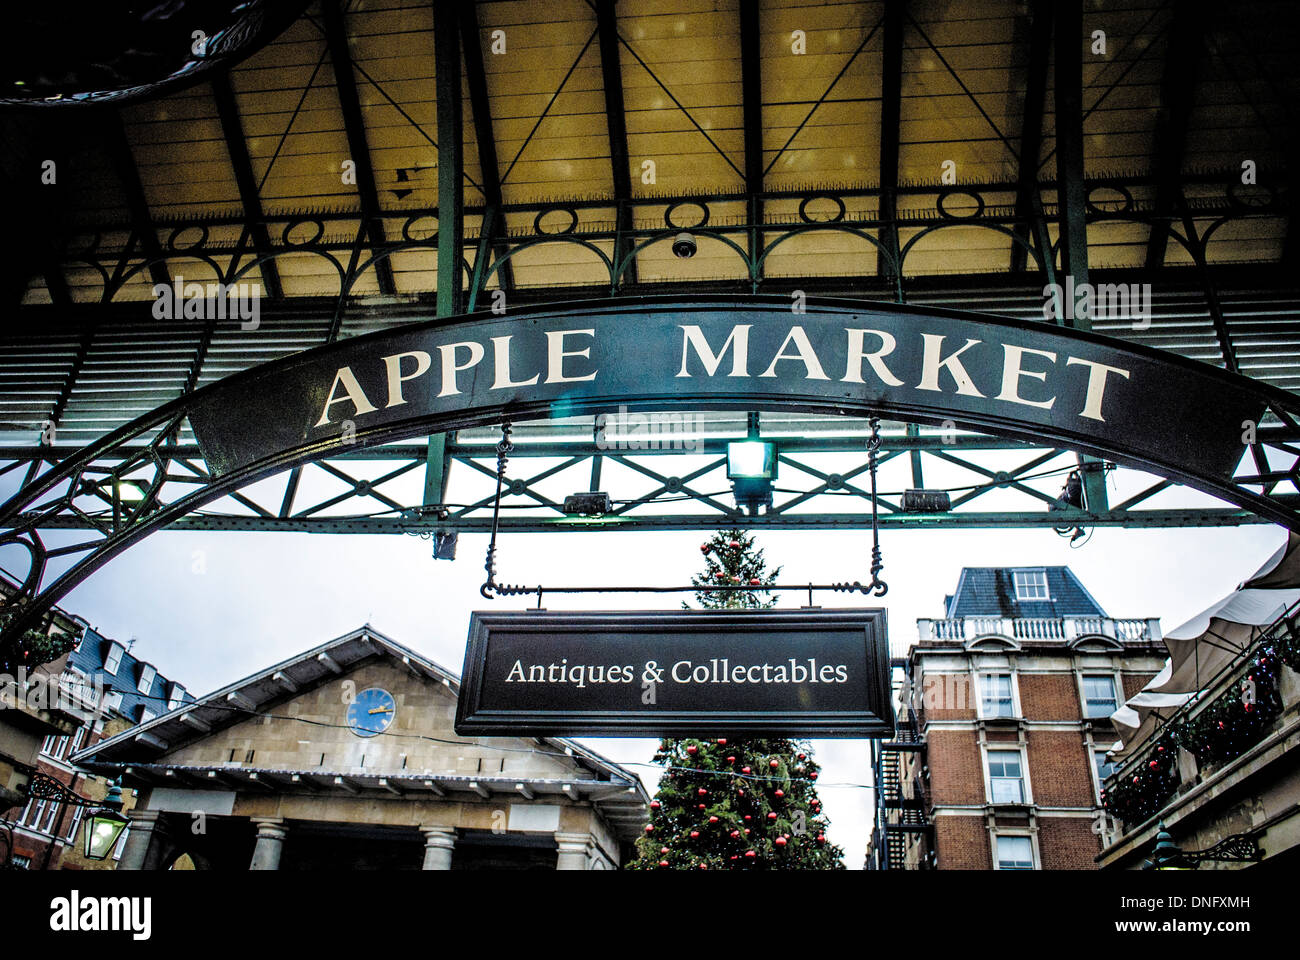 Prepossessing Apple Market Sign At Covent Garden London Uk Stock Photo  With Glamorous Apple Market Sign At Covent Garden London Uk With Astounding Sunningdale Gardens Also Garden Game In Addition Fun Things To Do In Your Garden And Garden Furnitire As Well As Rooftop Gardens Wakefield Additionally Gardening Express Reviews From Alamycom With   Glamorous Apple Market Sign At Covent Garden London Uk Stock Photo  With Astounding Apple Market Sign At Covent Garden London Uk And Prepossessing Sunningdale Gardens Also Garden Game In Addition Fun Things To Do In Your Garden From Alamycom